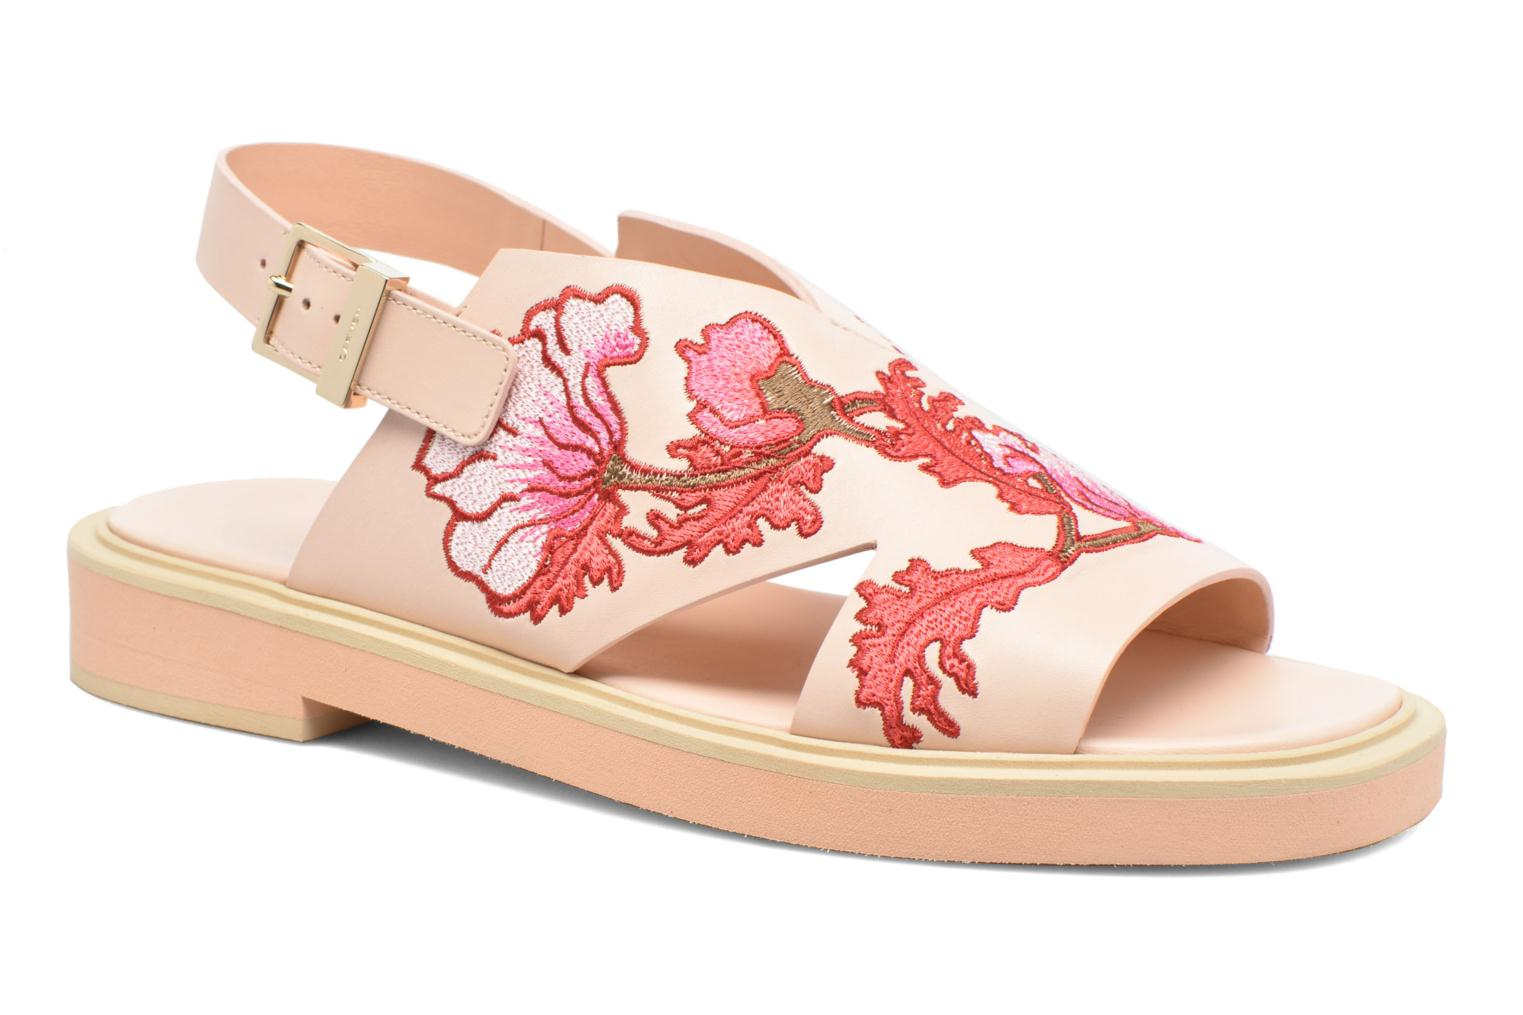 Butterfly Sandal by CarvenRebajas - 30%